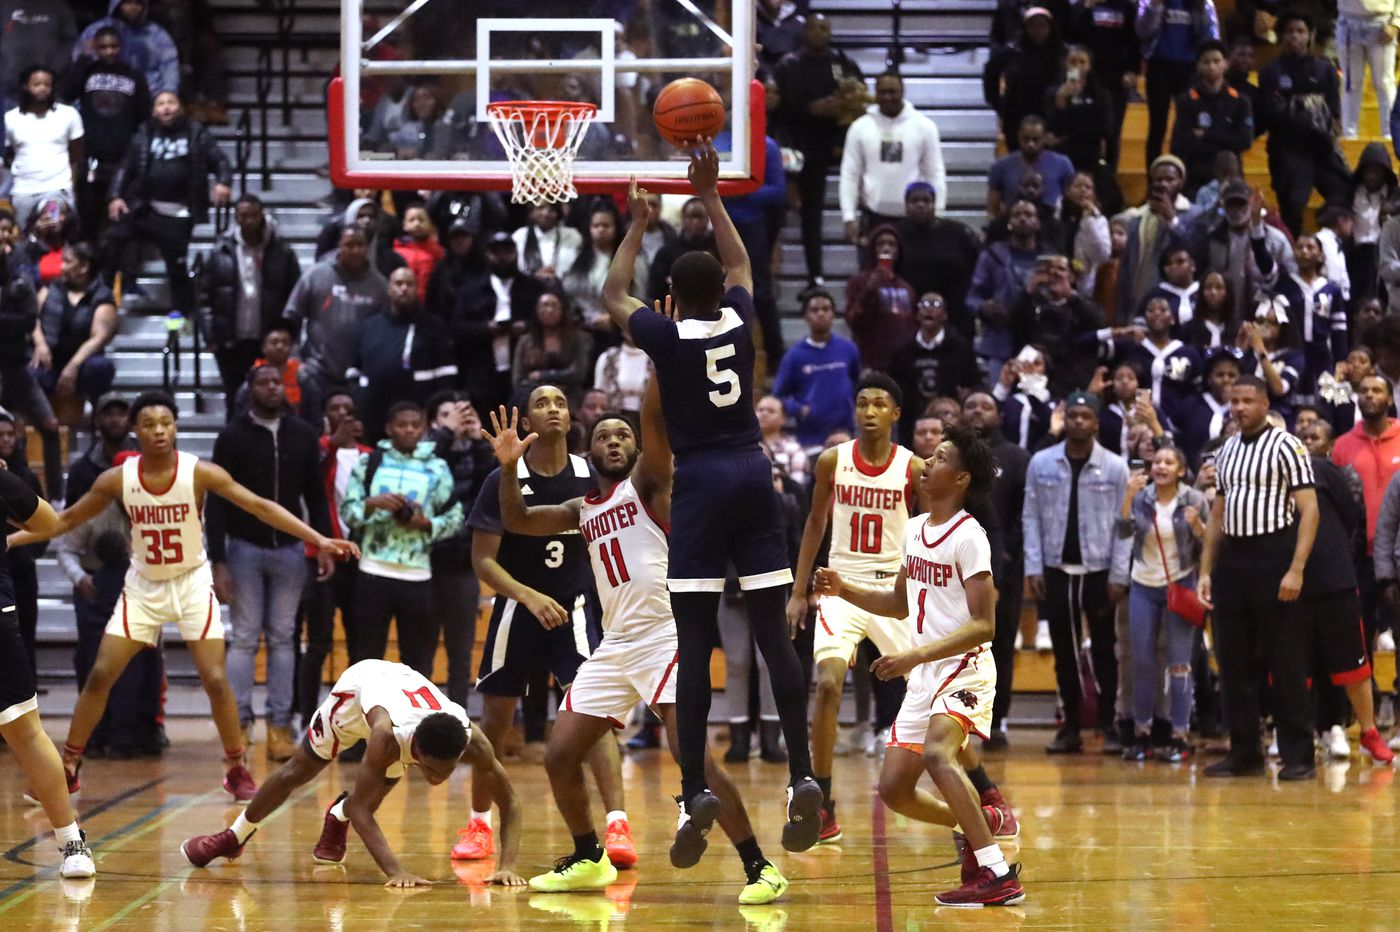 Nisine Poplar's late three-pointer powers MC&S past Imhotep in Public League semifinals